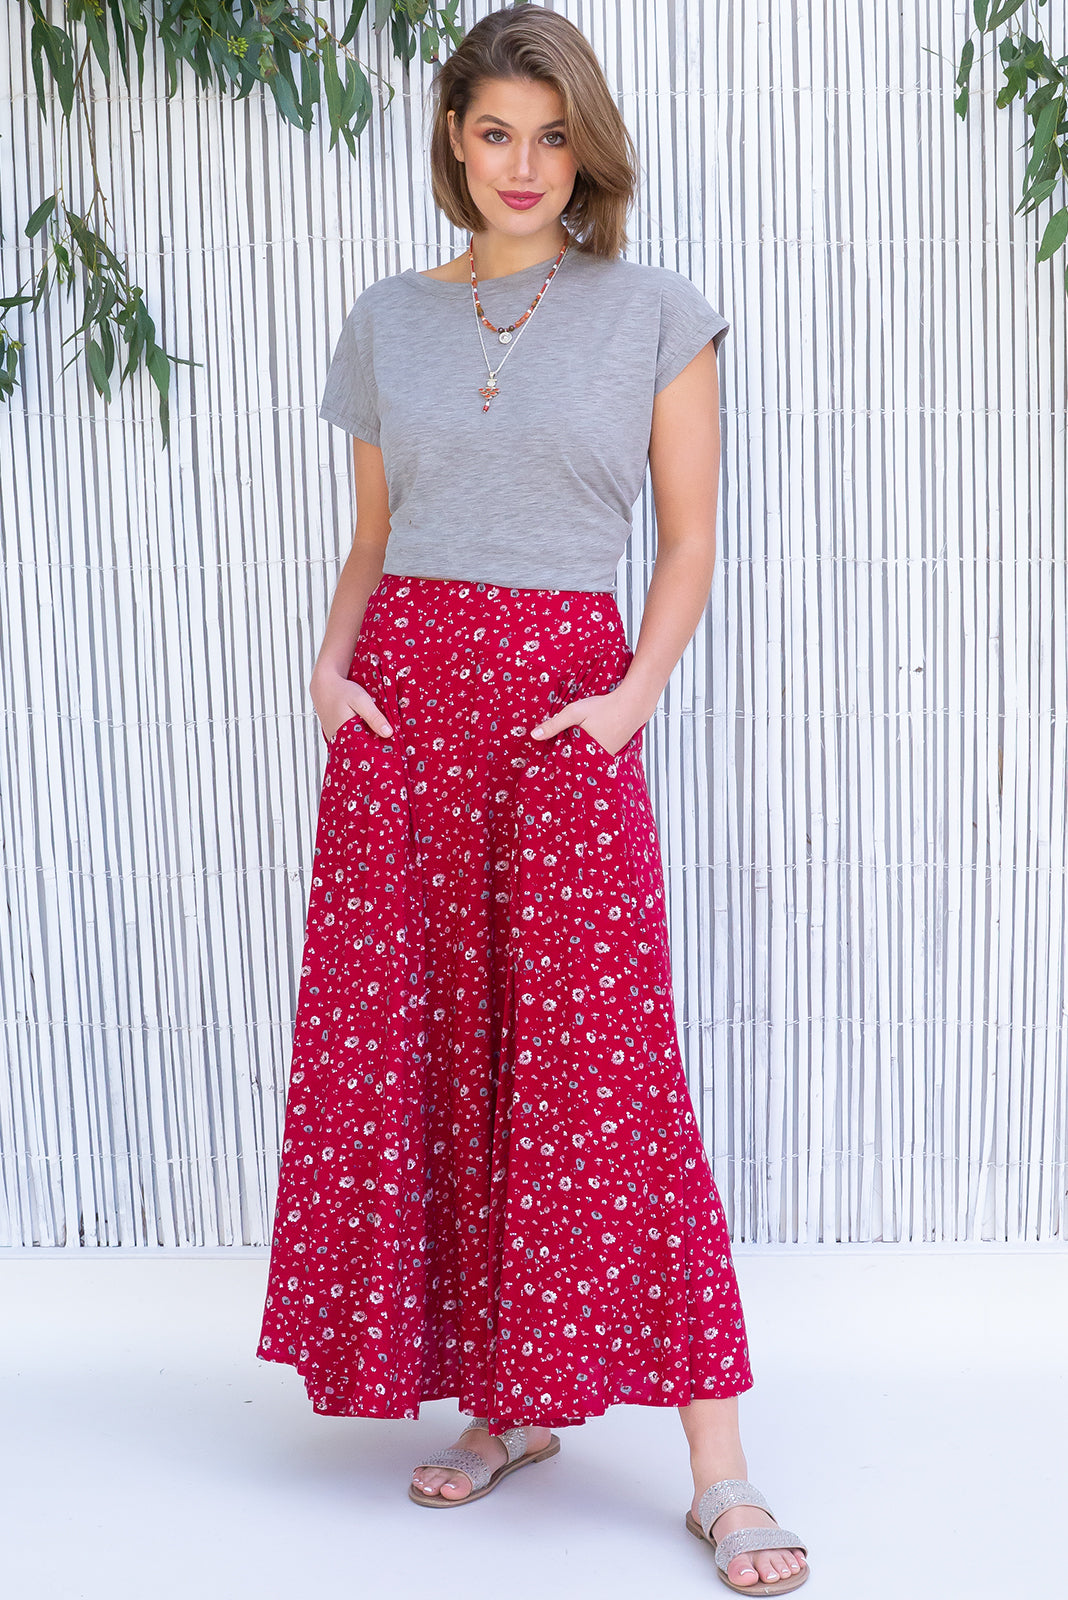 Atlantis Paso Doble Red Maxi Skirt features double V-shaped waist yoke, elasticated back of waist, side pockets, shapely hemline and woven 100% viscose in rich red base with simple floral print.